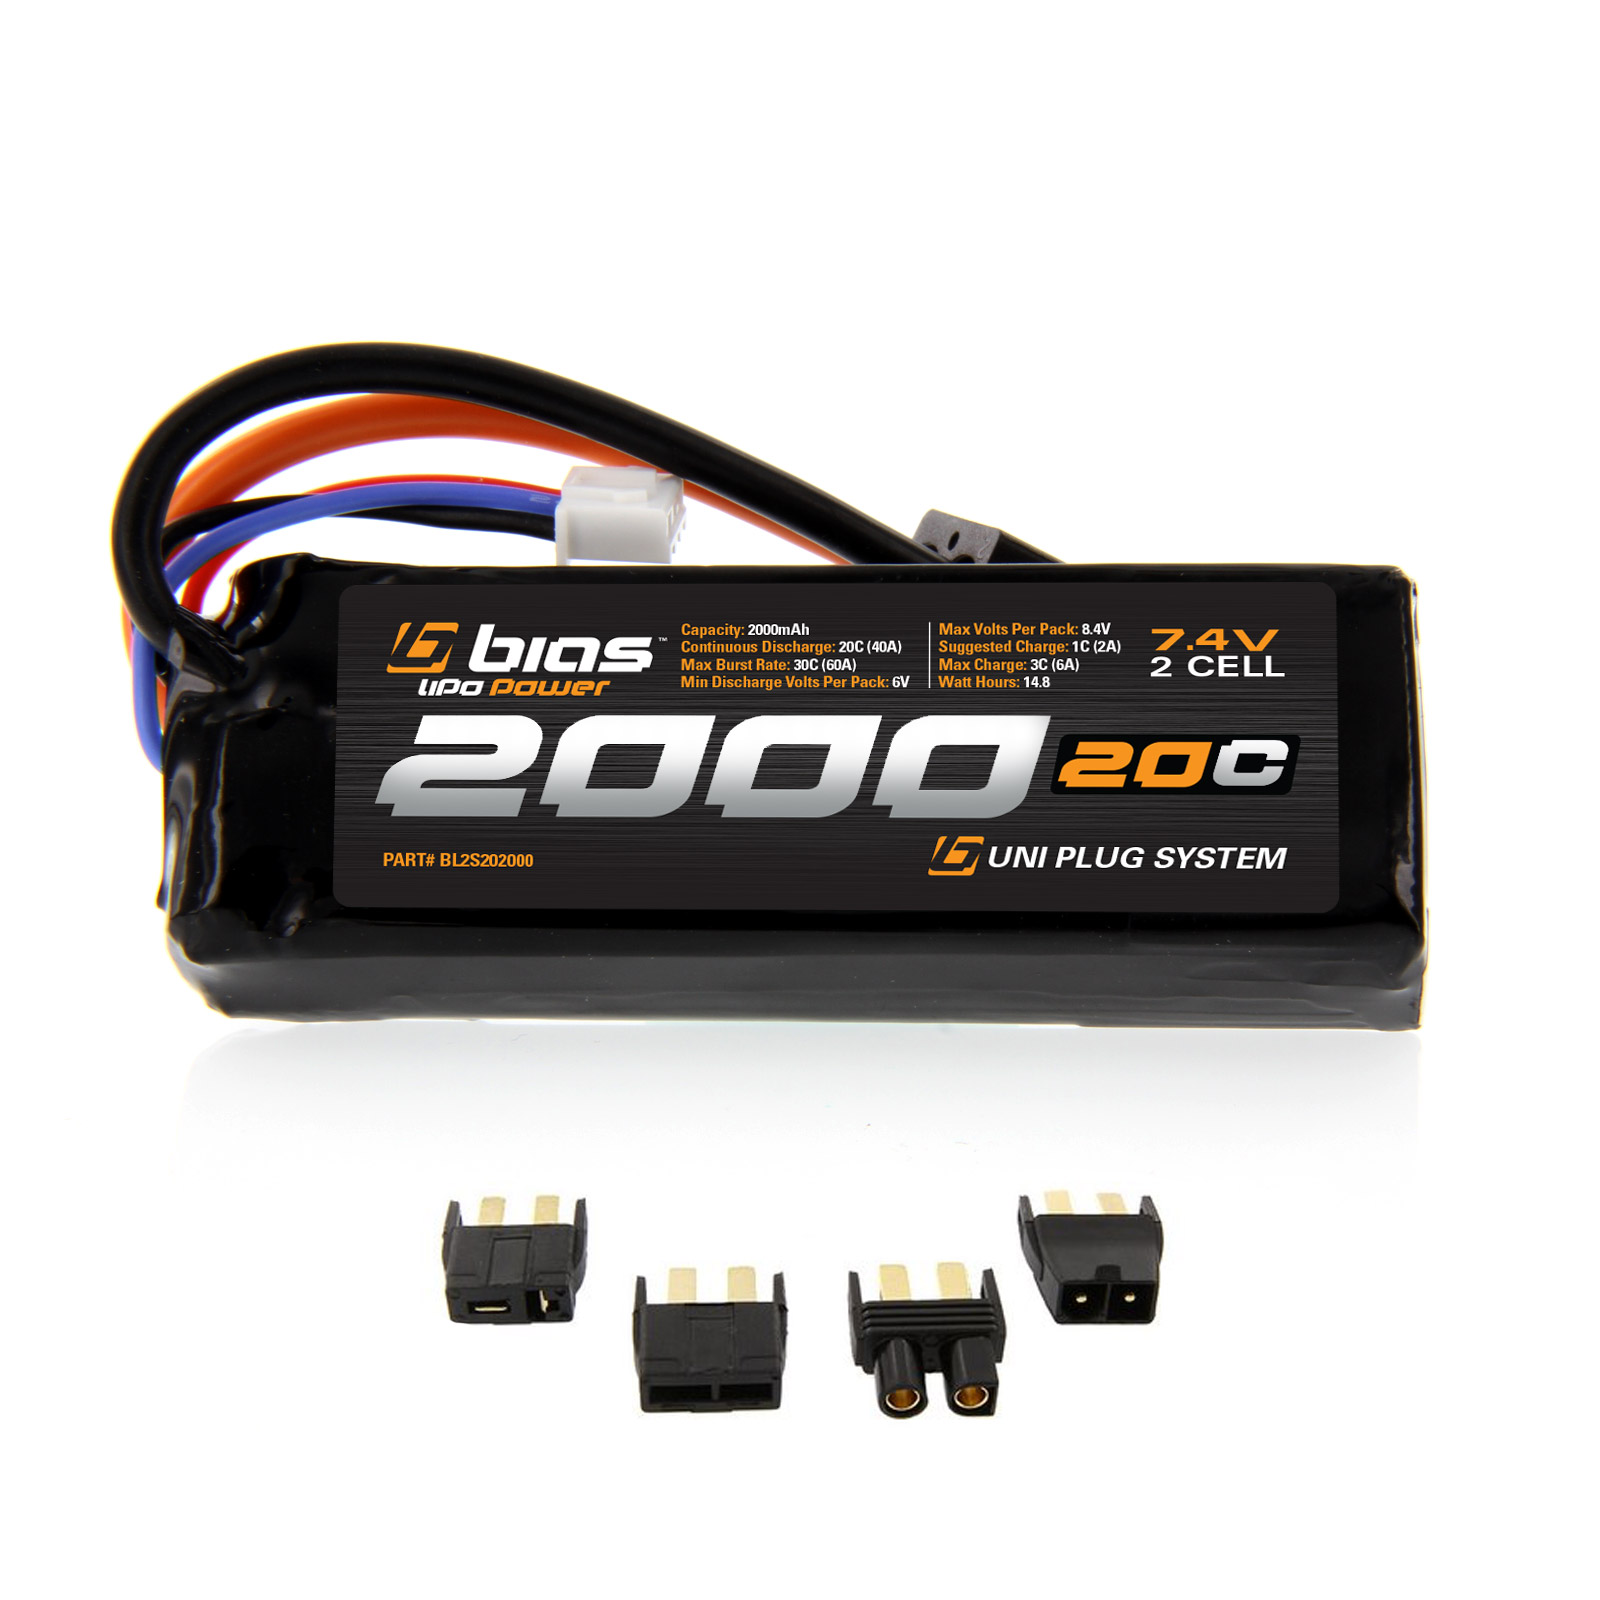 Bias LiPo Battery for Traxxas 1/16 Ford Fiesta 20C 2S 2000mAh 7.4V LiPo (EC3/Deans/Traxxas/Tamiya Plug) for RC Car, Truck, Buggy, Boat, Heli and Drone